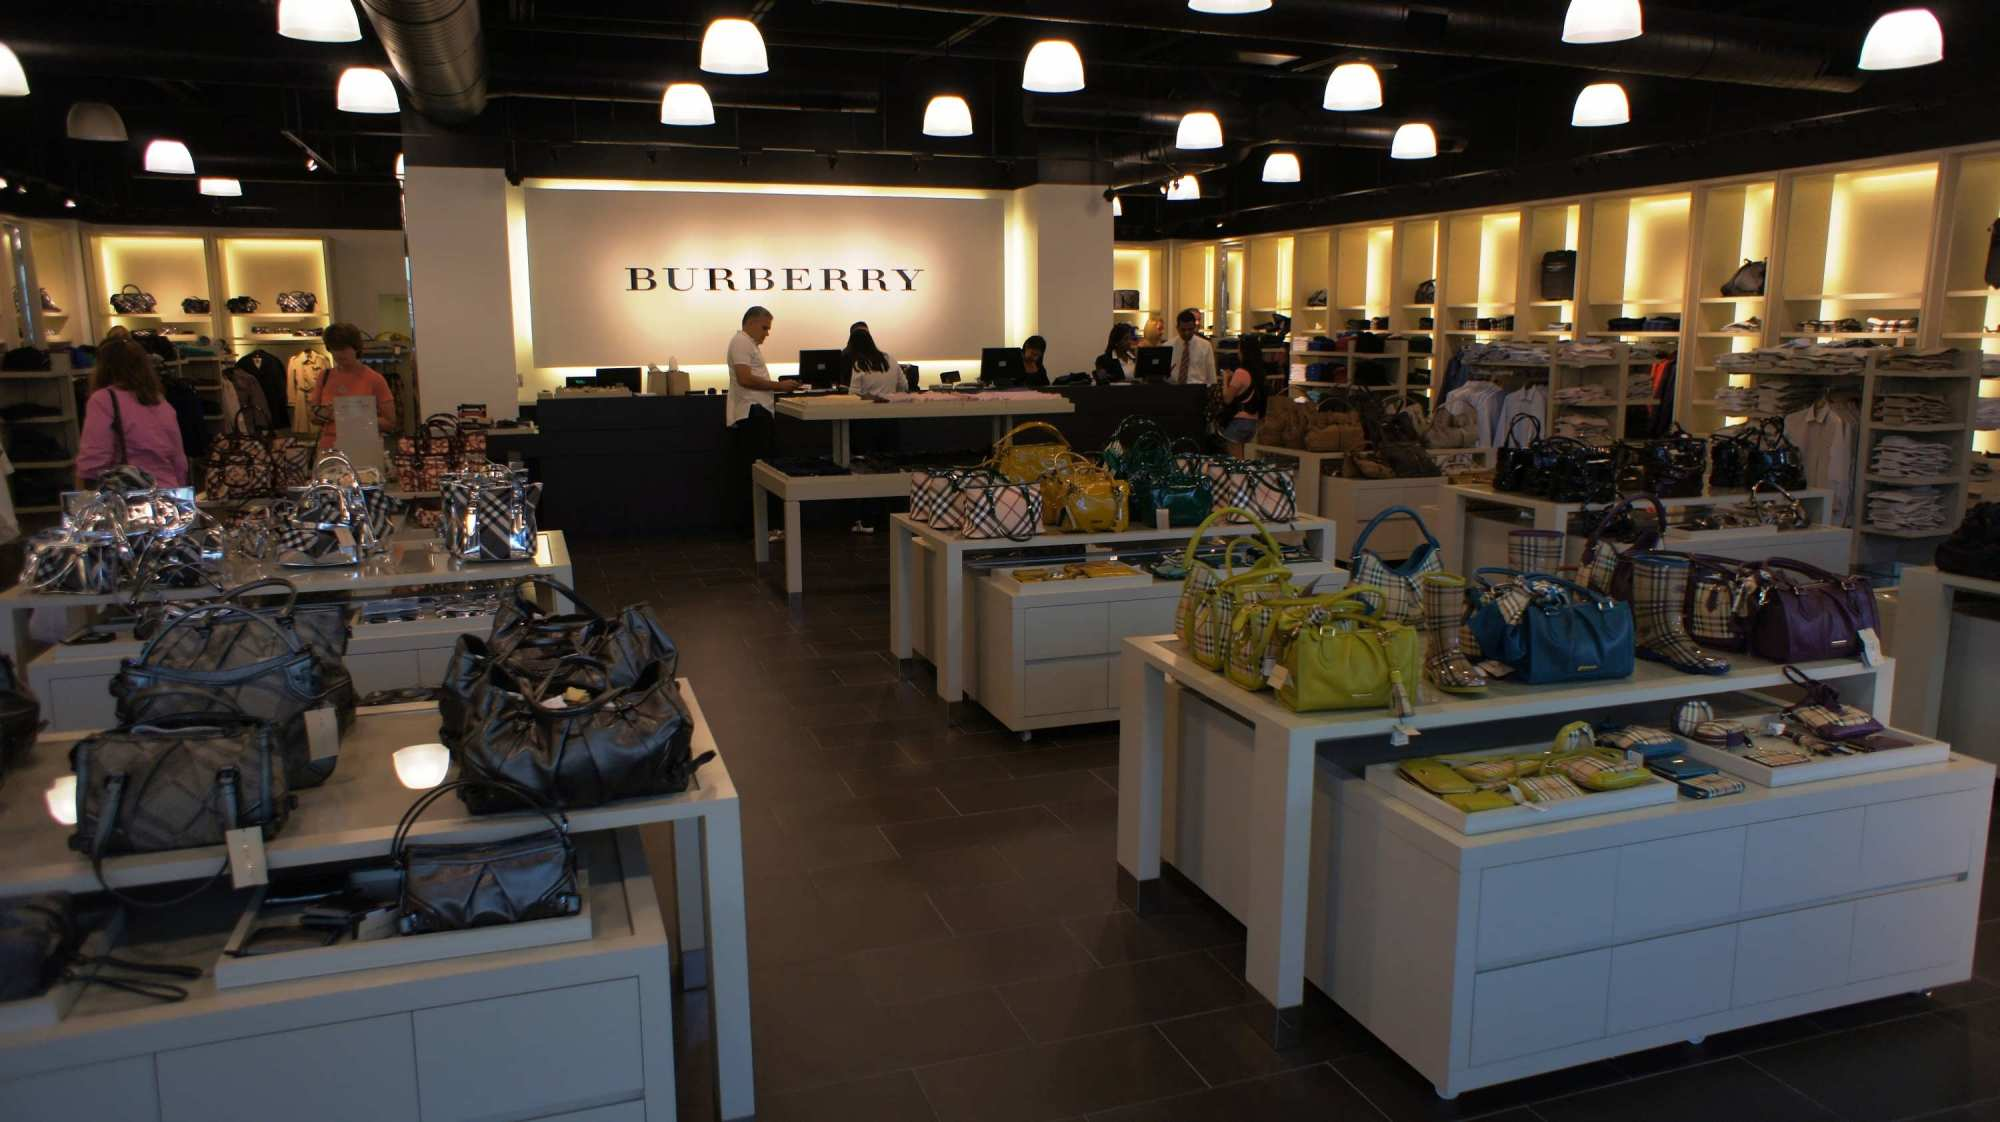 burrberry outlet shsd  burberry outlet